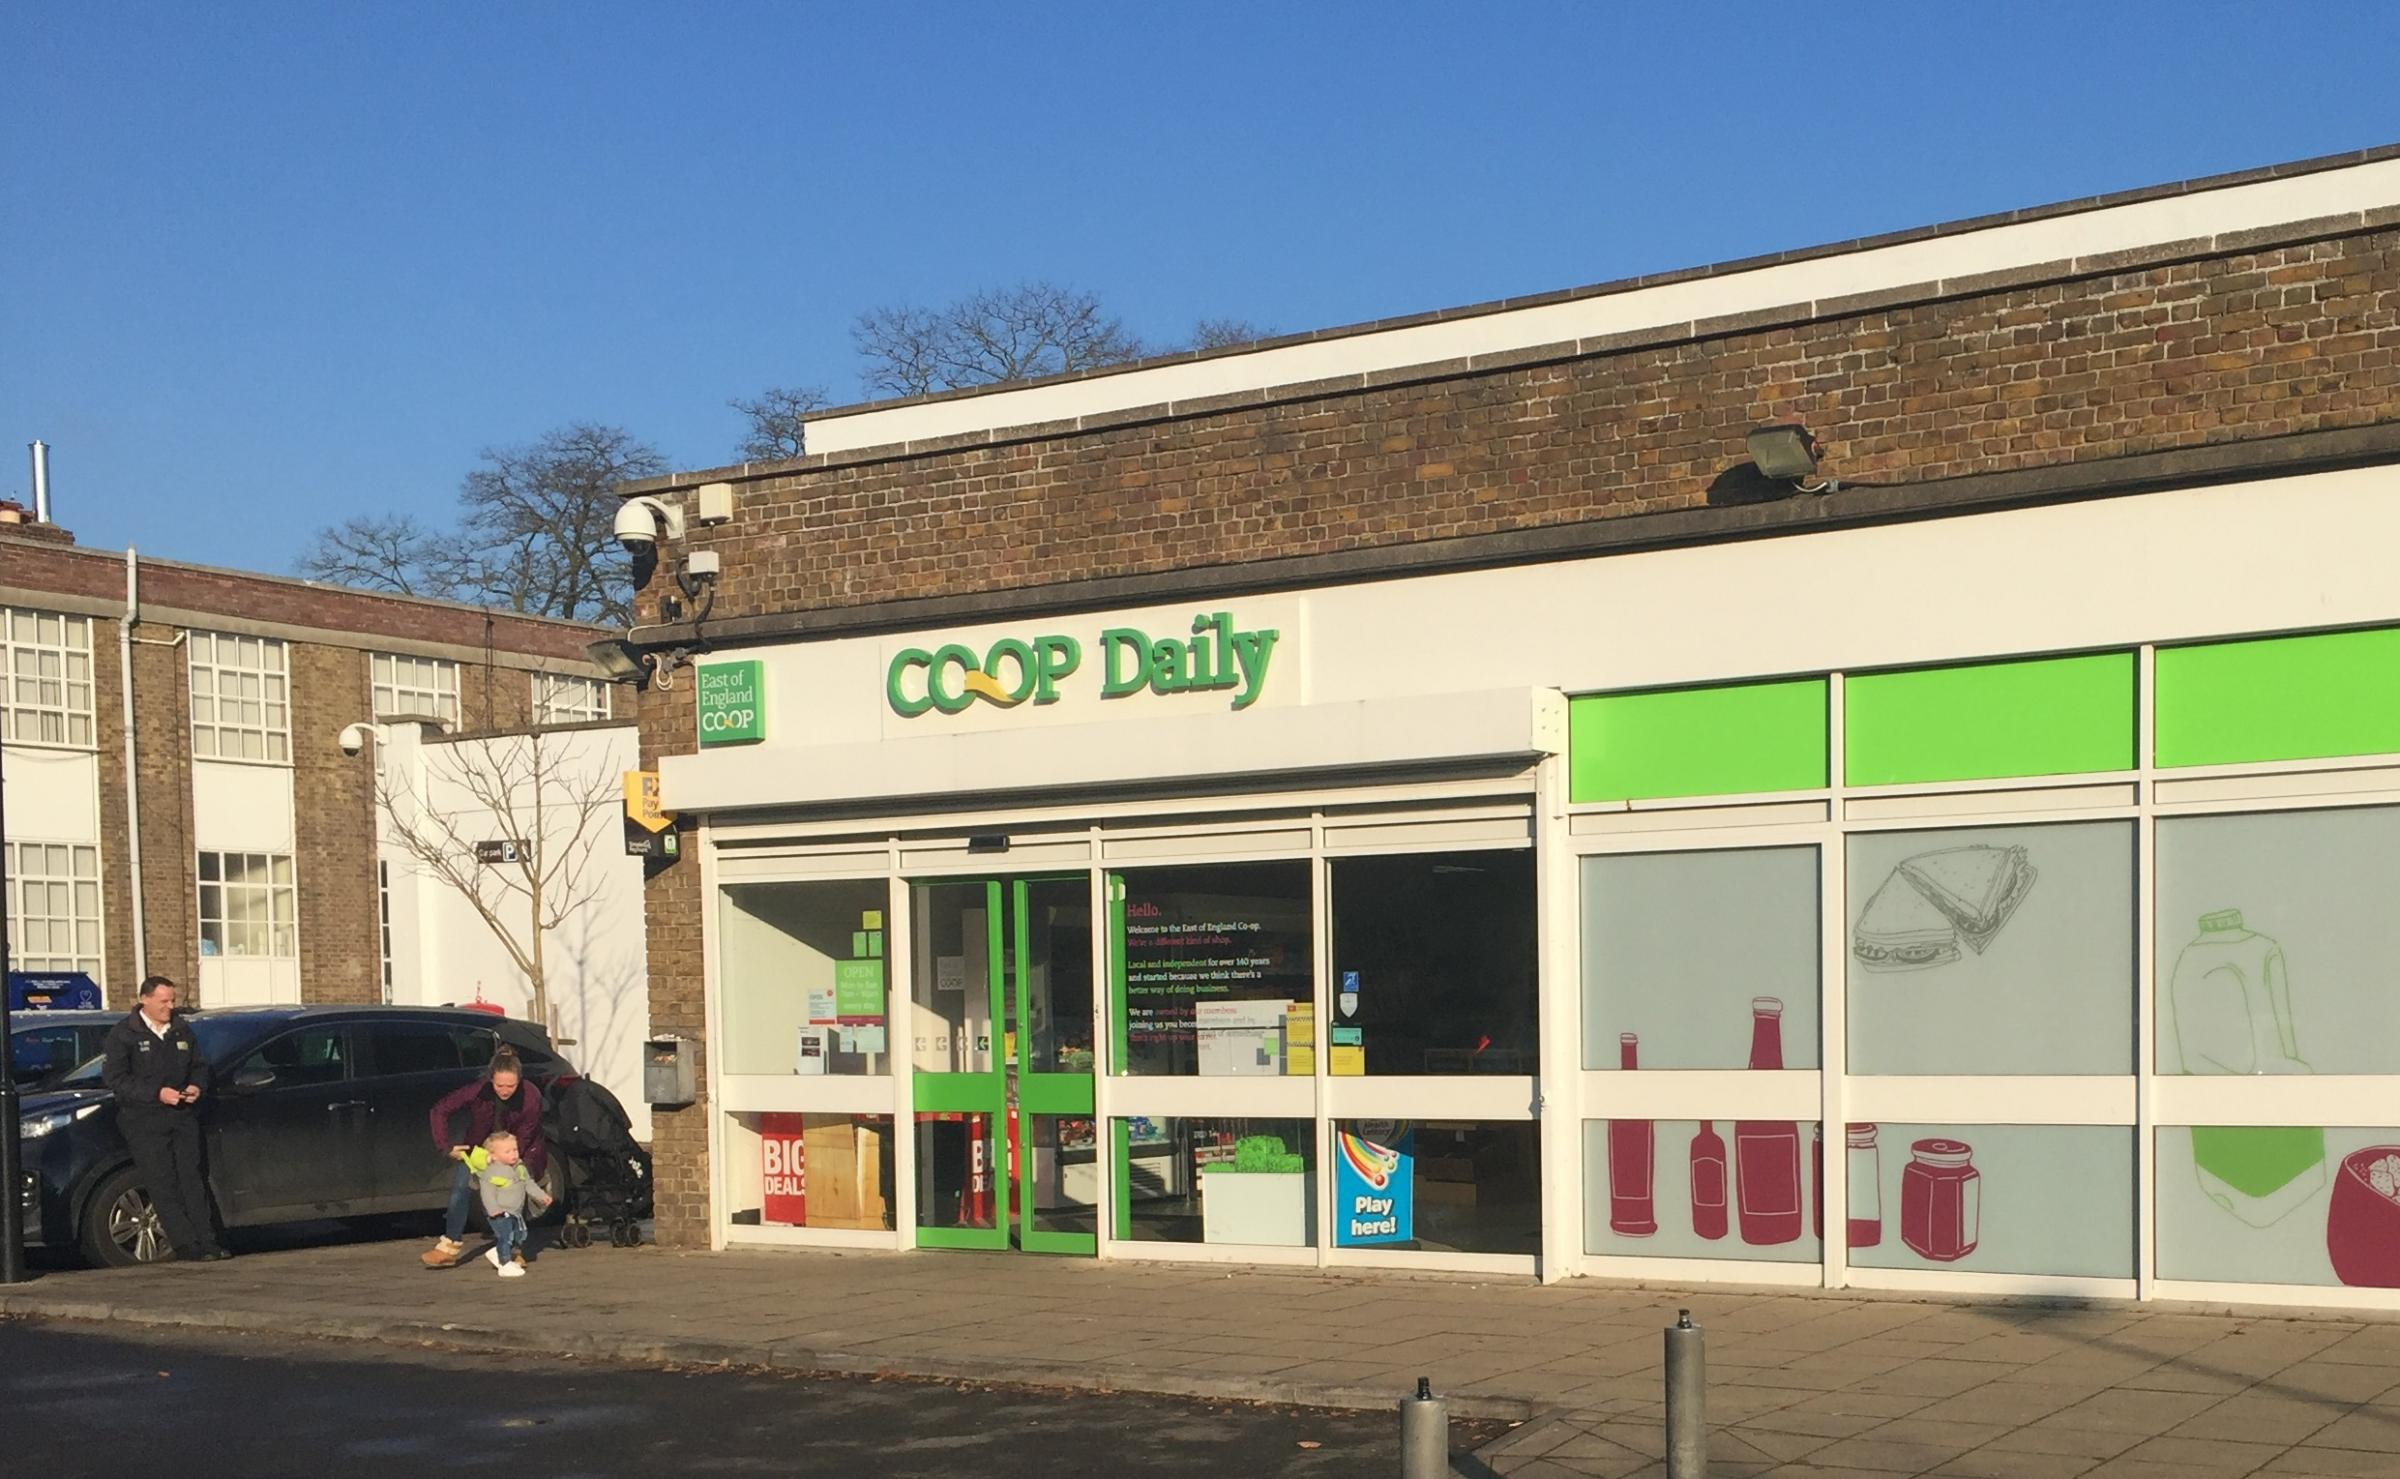 Dad in court over Co-op robbery probe